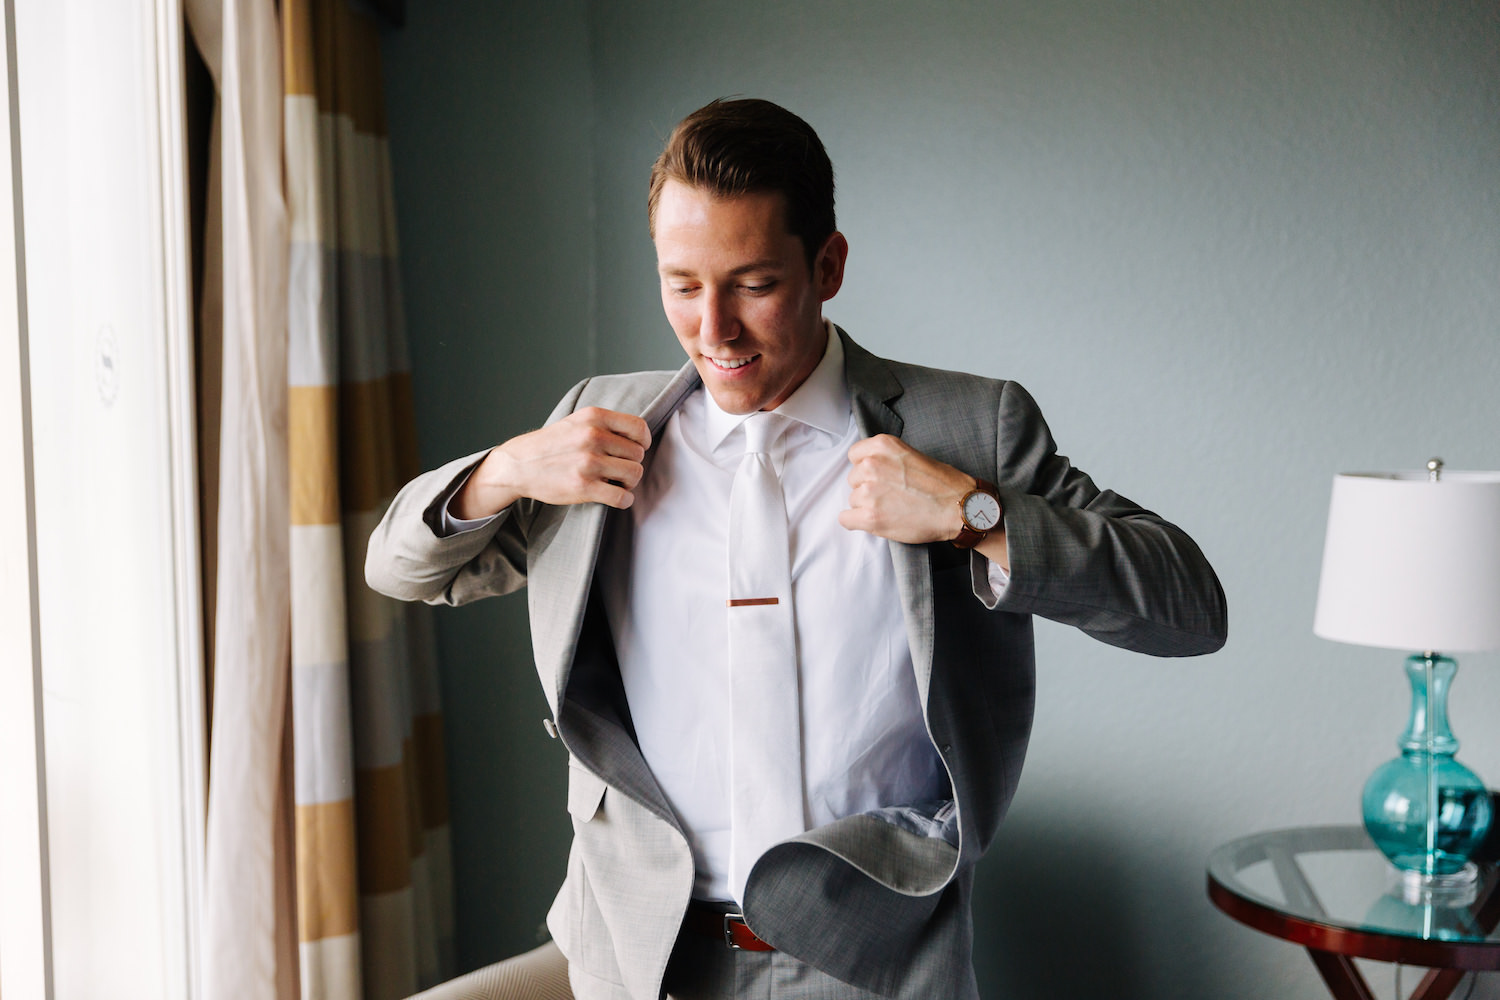 tampa-wedding-groom-getting-ready-jake-and-katie-photography